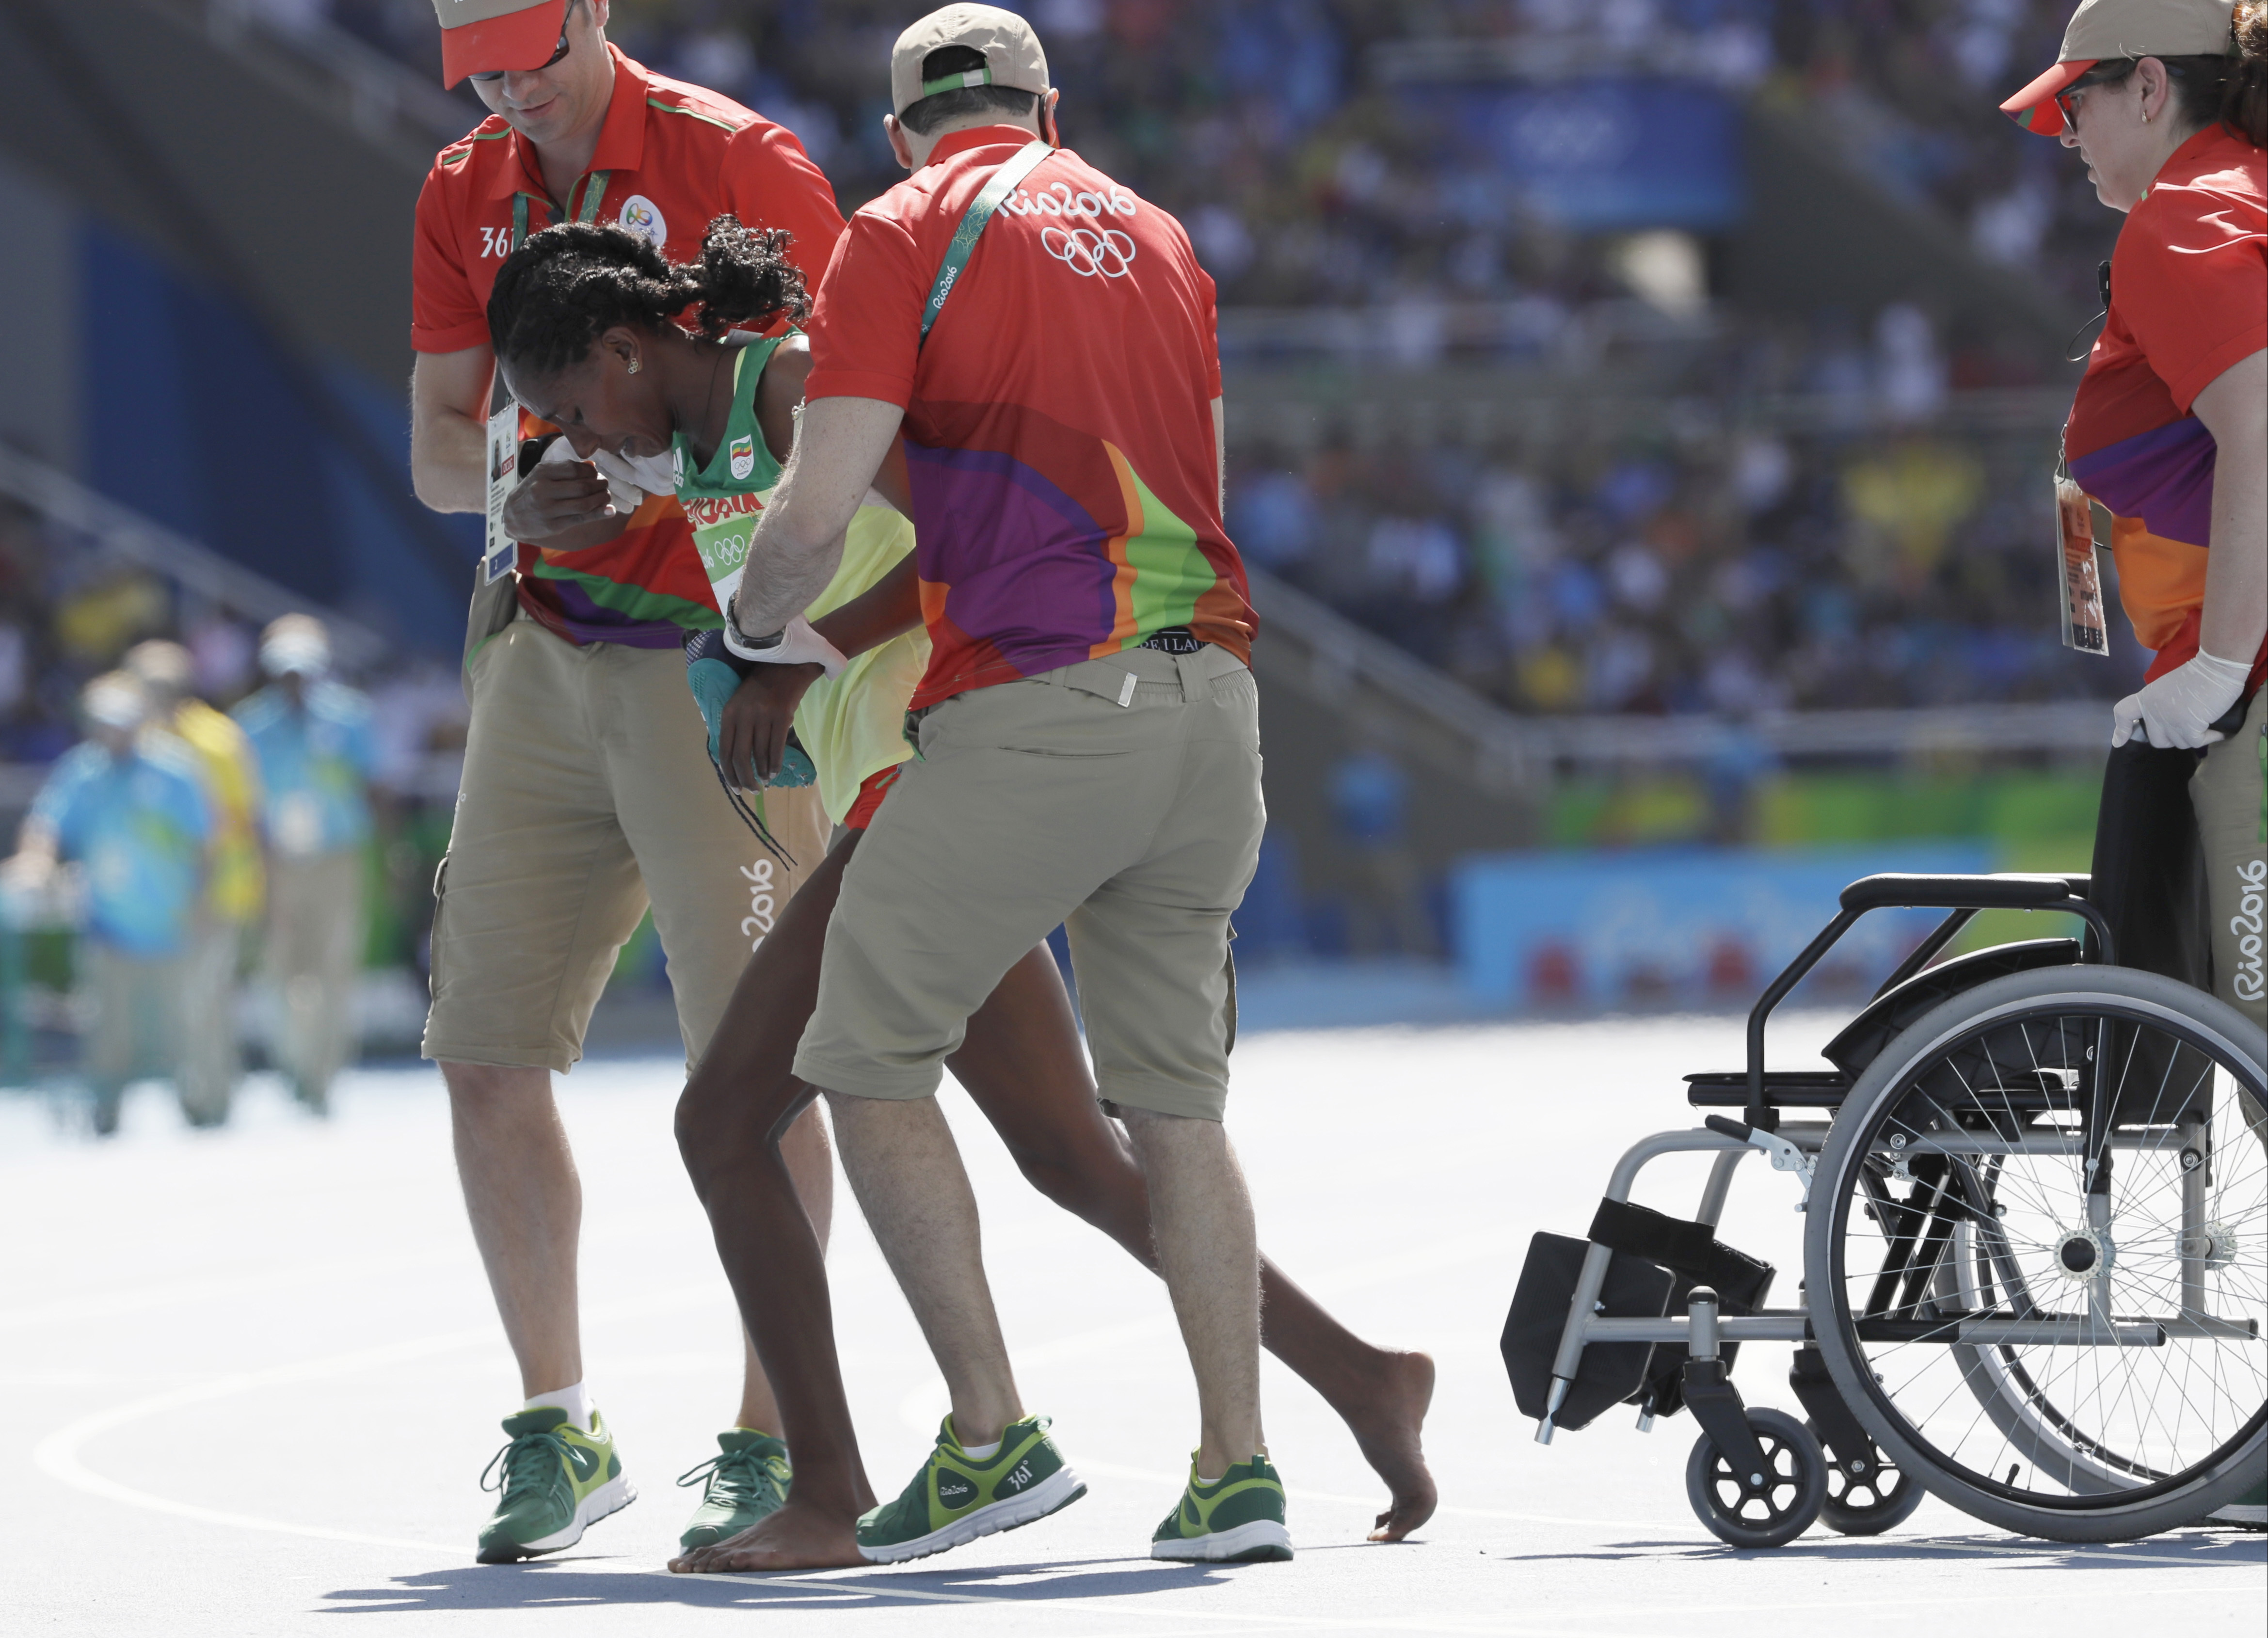 Ethiopia's Etenesh Diro is helped from the track after a women's 3000-meter steeplechase heat during the athletics competitions of the 2016 Summer Olympics at the Olympic stadium in Rio de Janeiro, Brazil, Saturday, Aug. 13, 2016. (AP Photo/David J. Phill